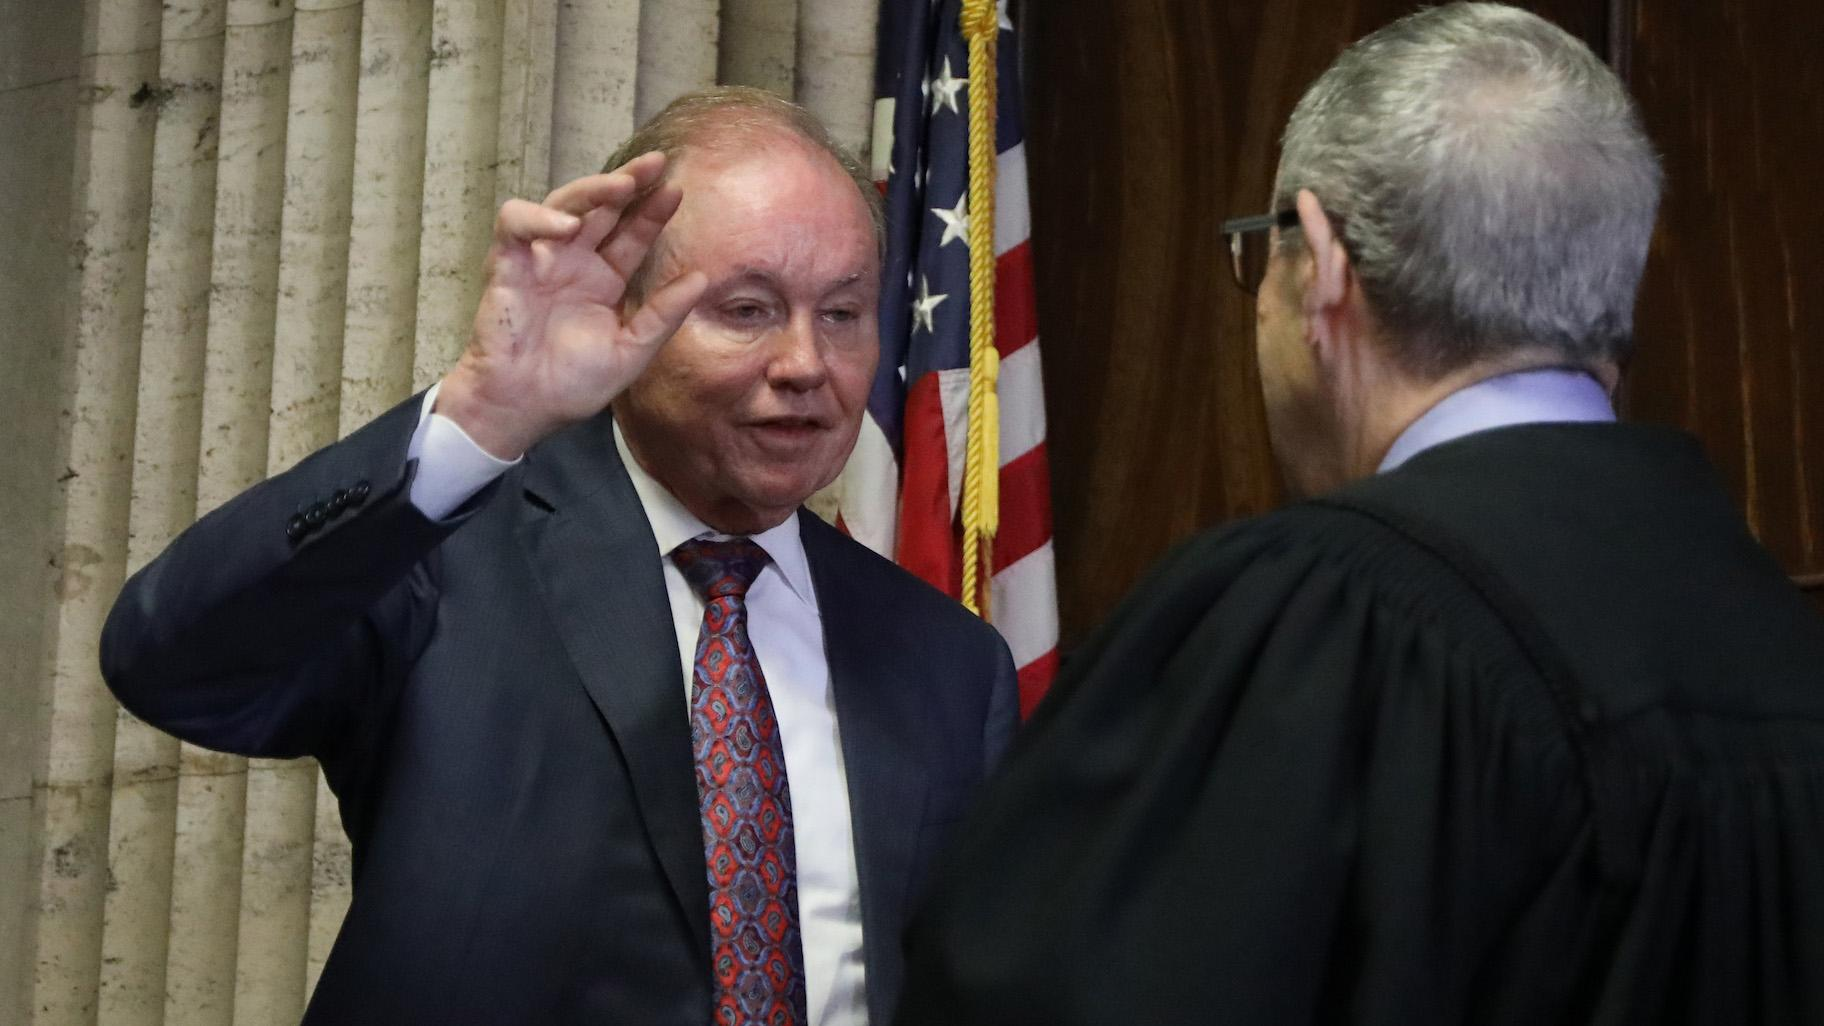 Former U.S. Attorney Dan Webb takes the oath of special prosecutor before Judge Michael Toomin during a status hearing concerning actor Jussie Smollett at the Leighton Criminal Court building, Friday, Aug. 23, 2019. (Antonio Perez / Pool / Chicago Tribune)